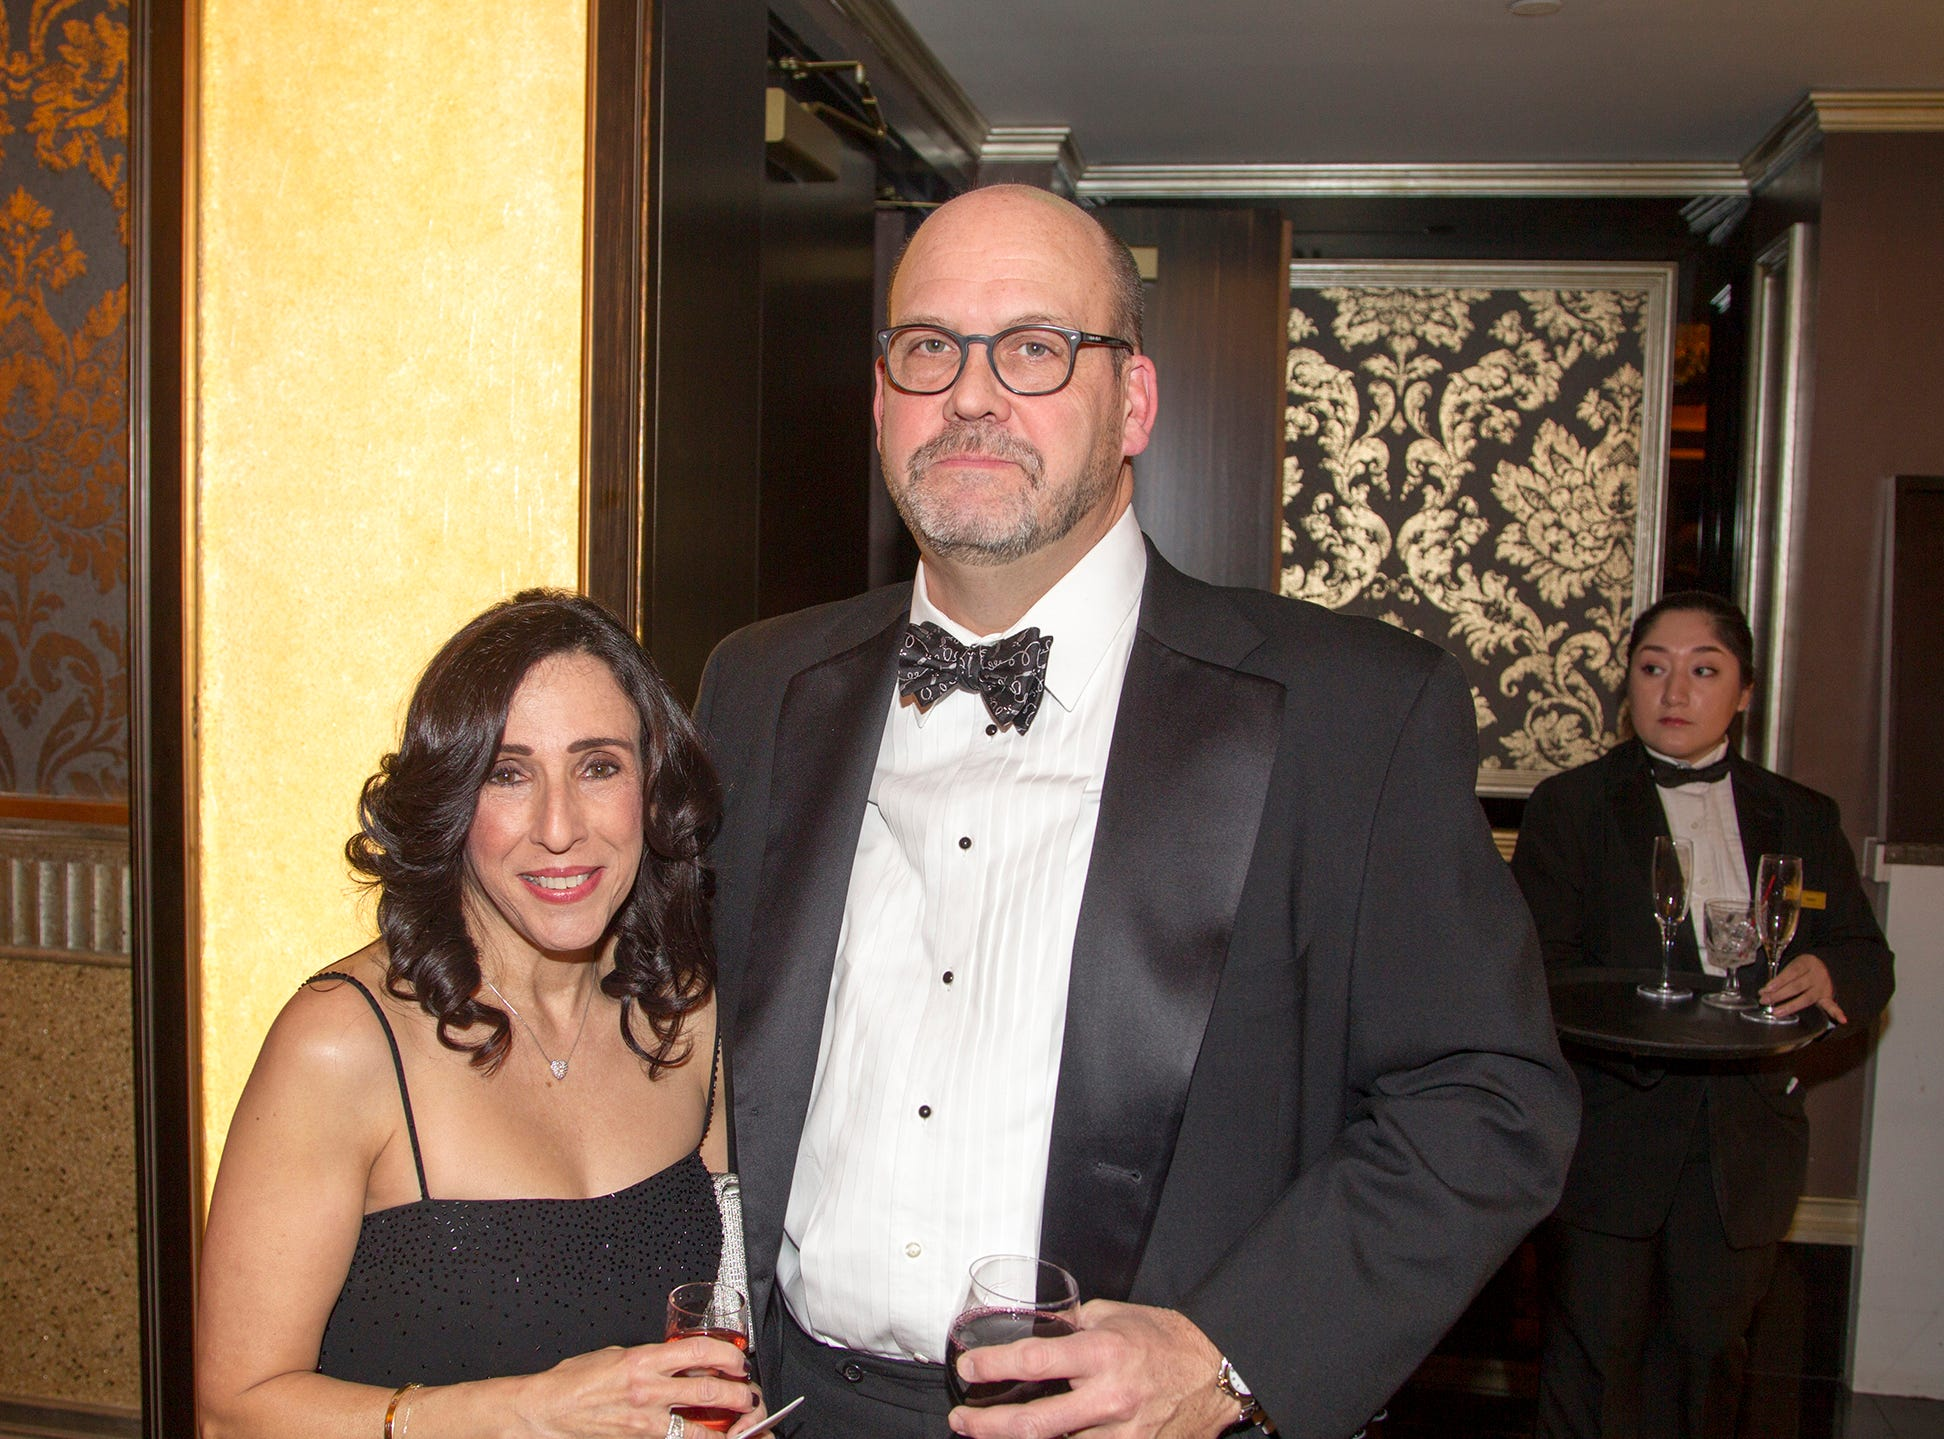 Marie and Scott O'Connor. Institute for Educational Achievement (IEA) held its annual Dinner Dance at Seasons in Washington Township. 02/02/2019